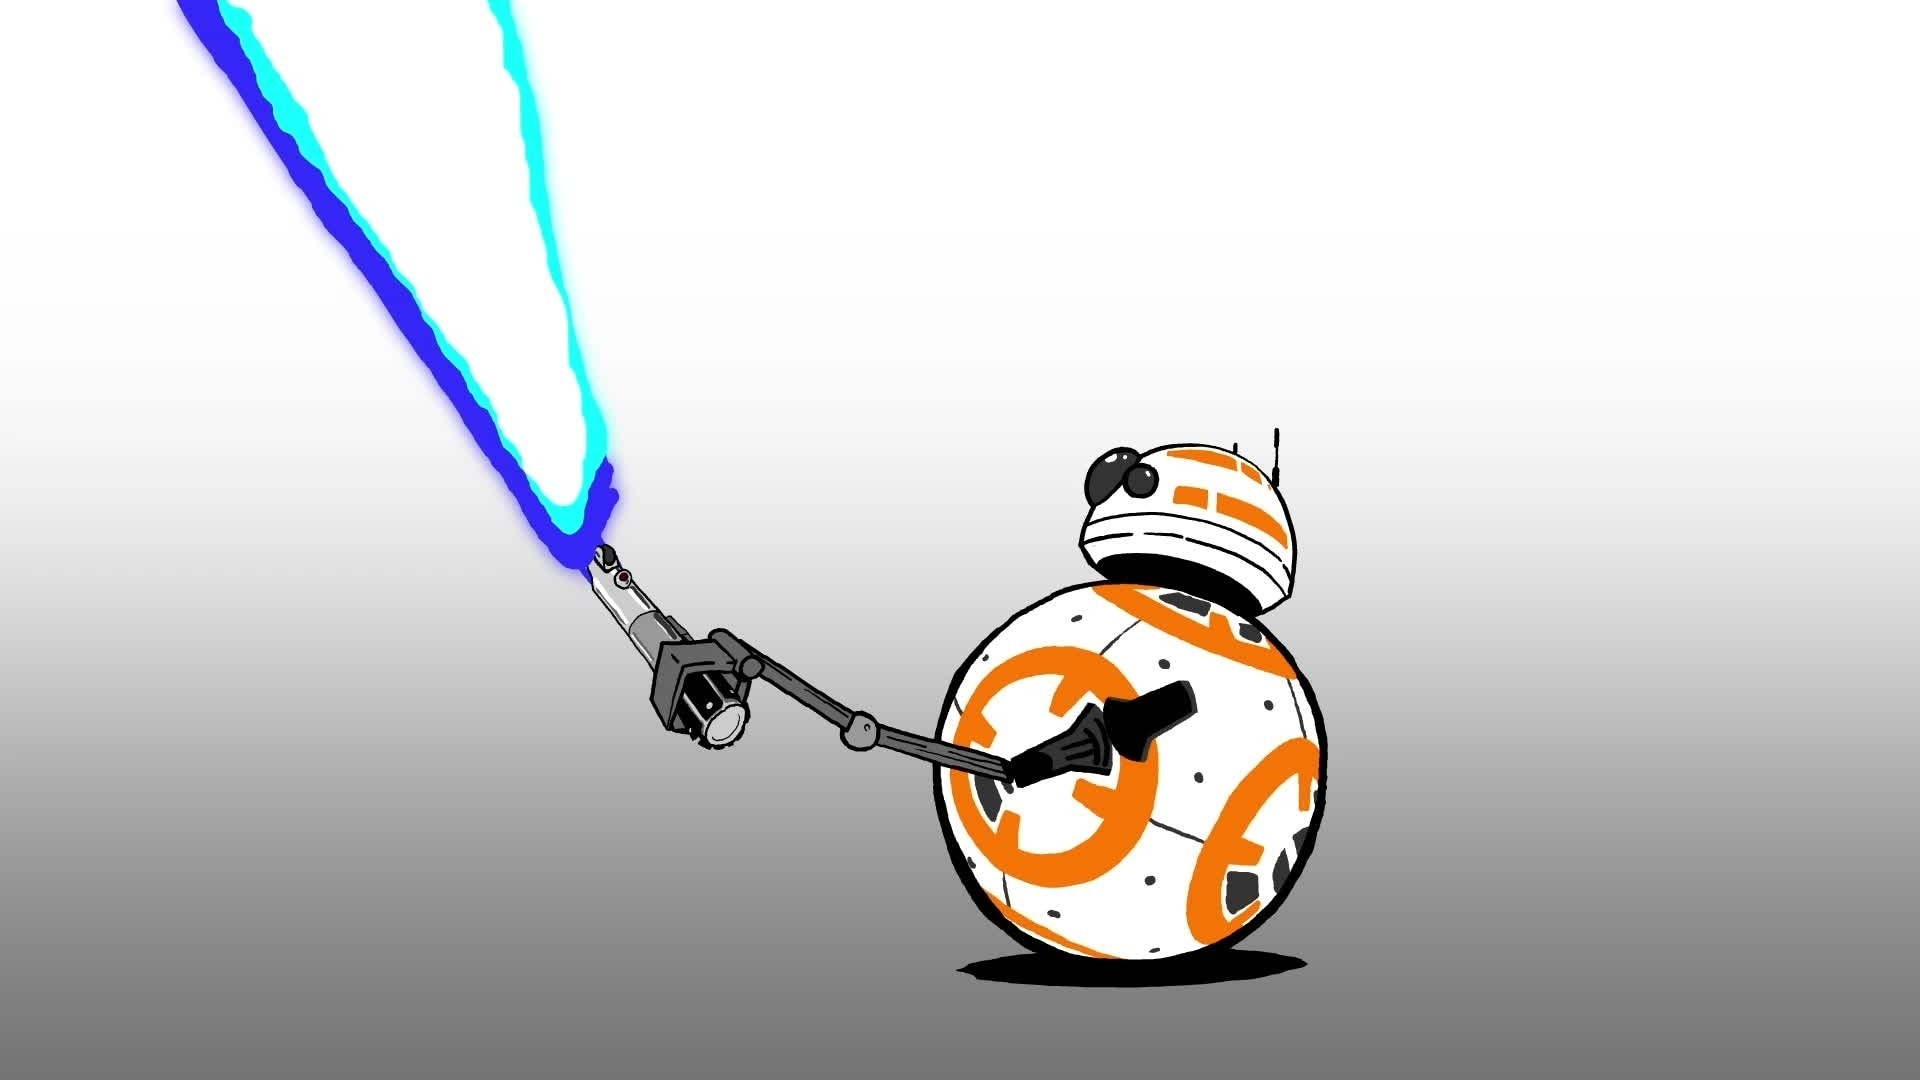 Star Wars Blips - Lightsaber